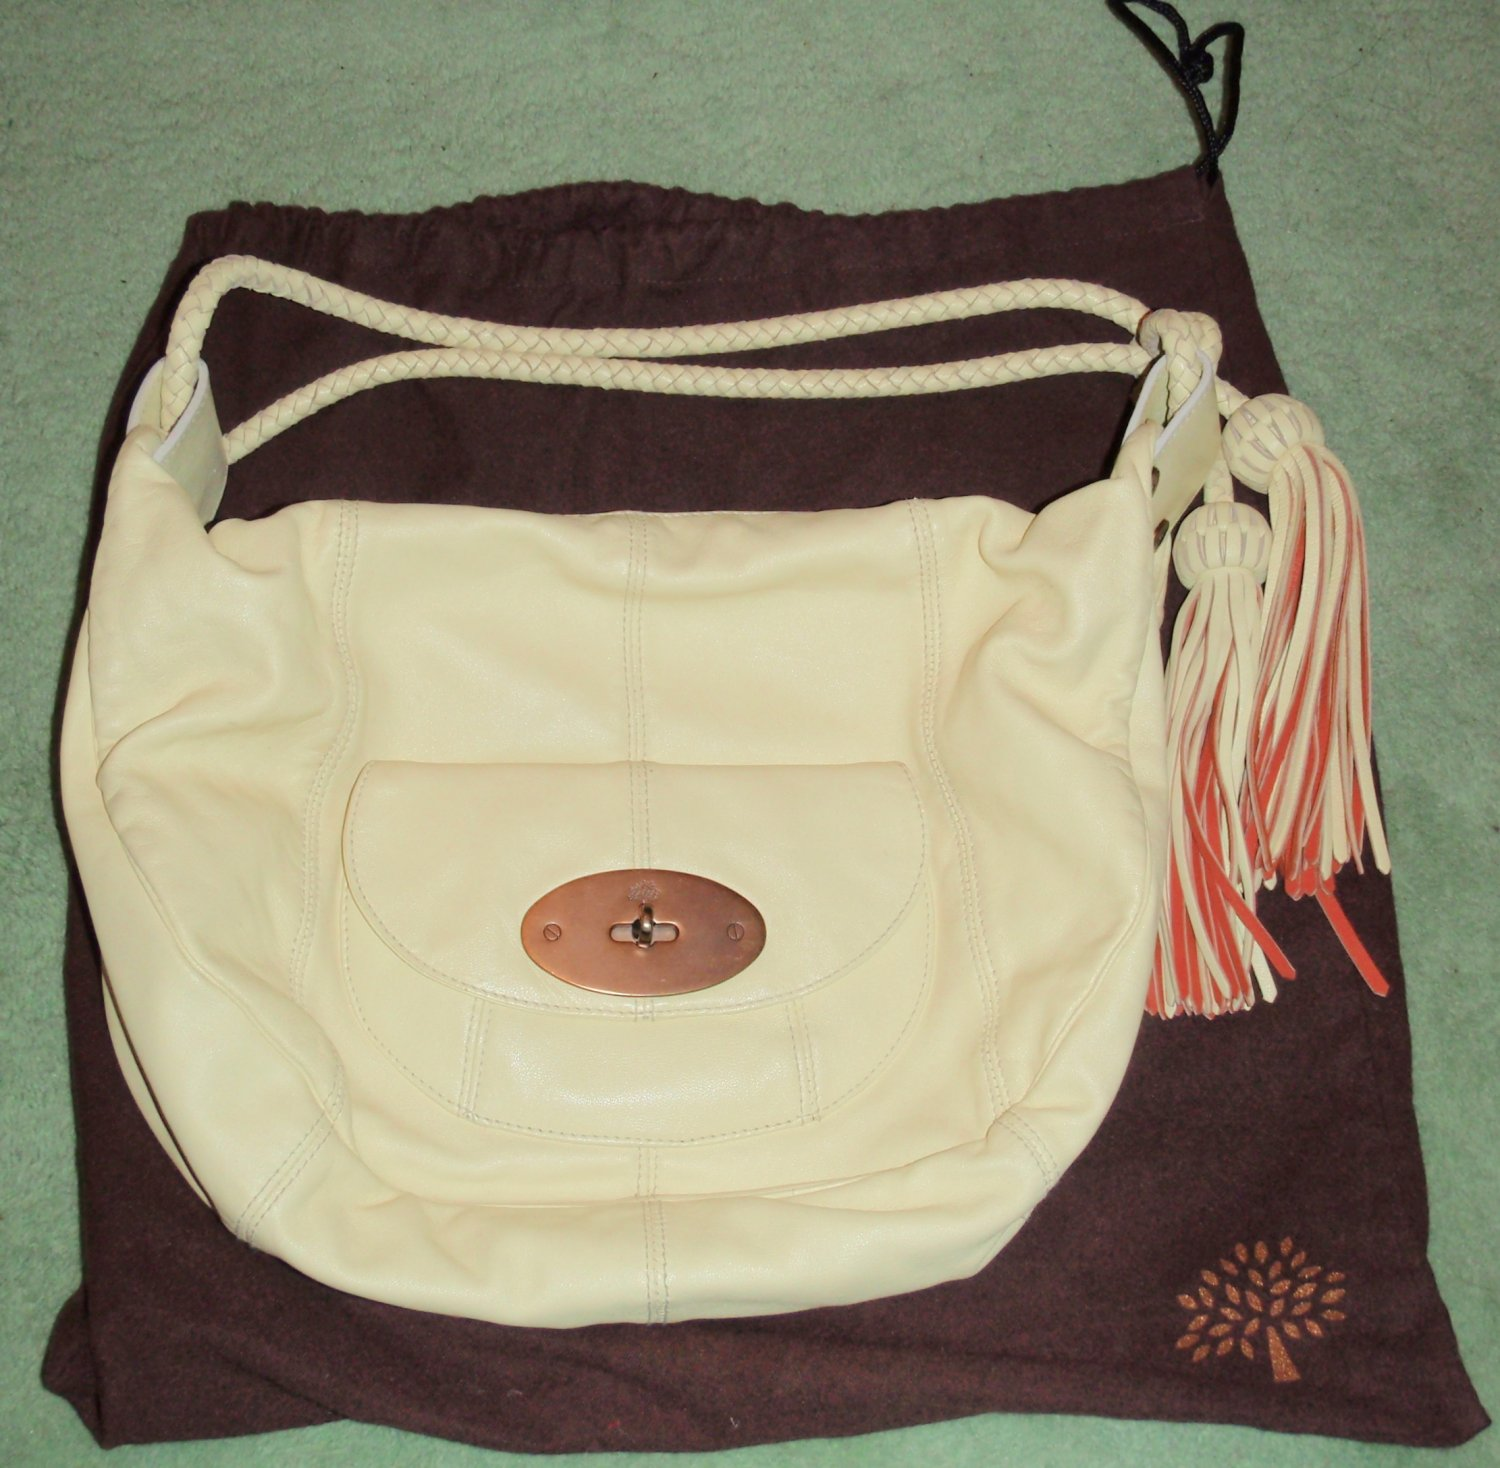 Mulberry Araline shoulder bag, with dustbag and receipt